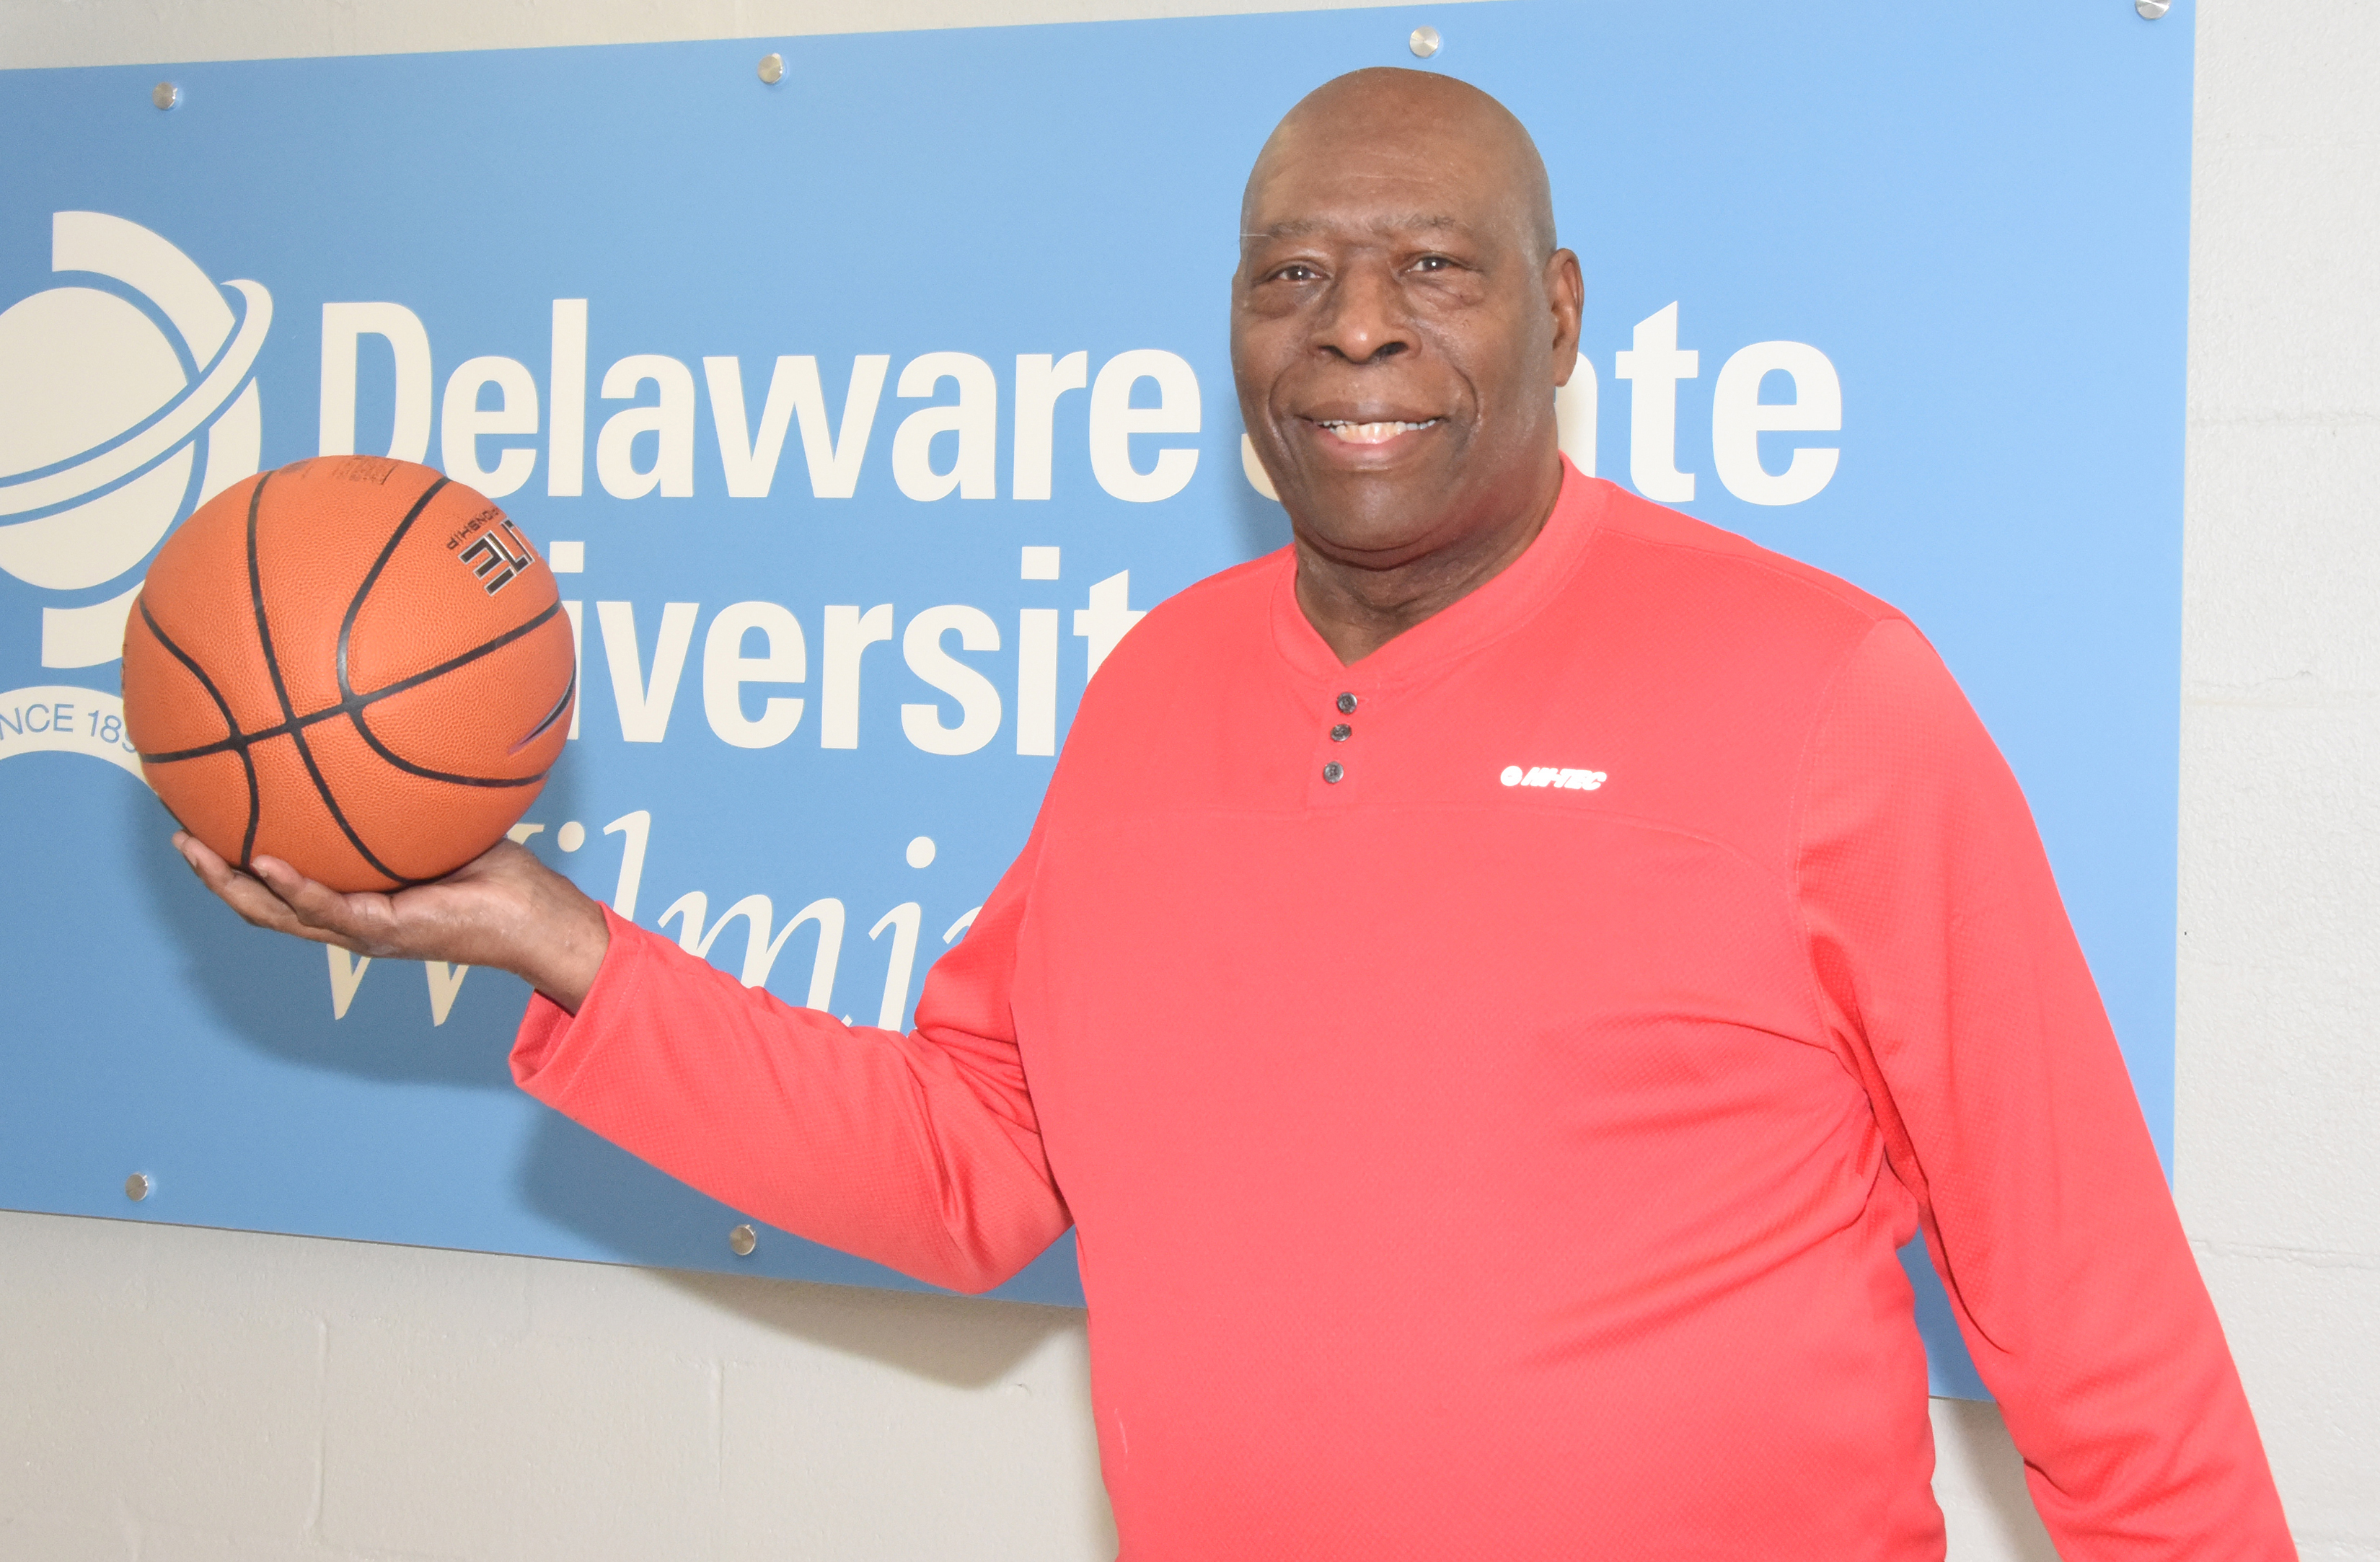 Maurice Pritchett's exploits as a star Hornet player in the 1960s has landed him in the Delaware Basketball Hall of Fame.